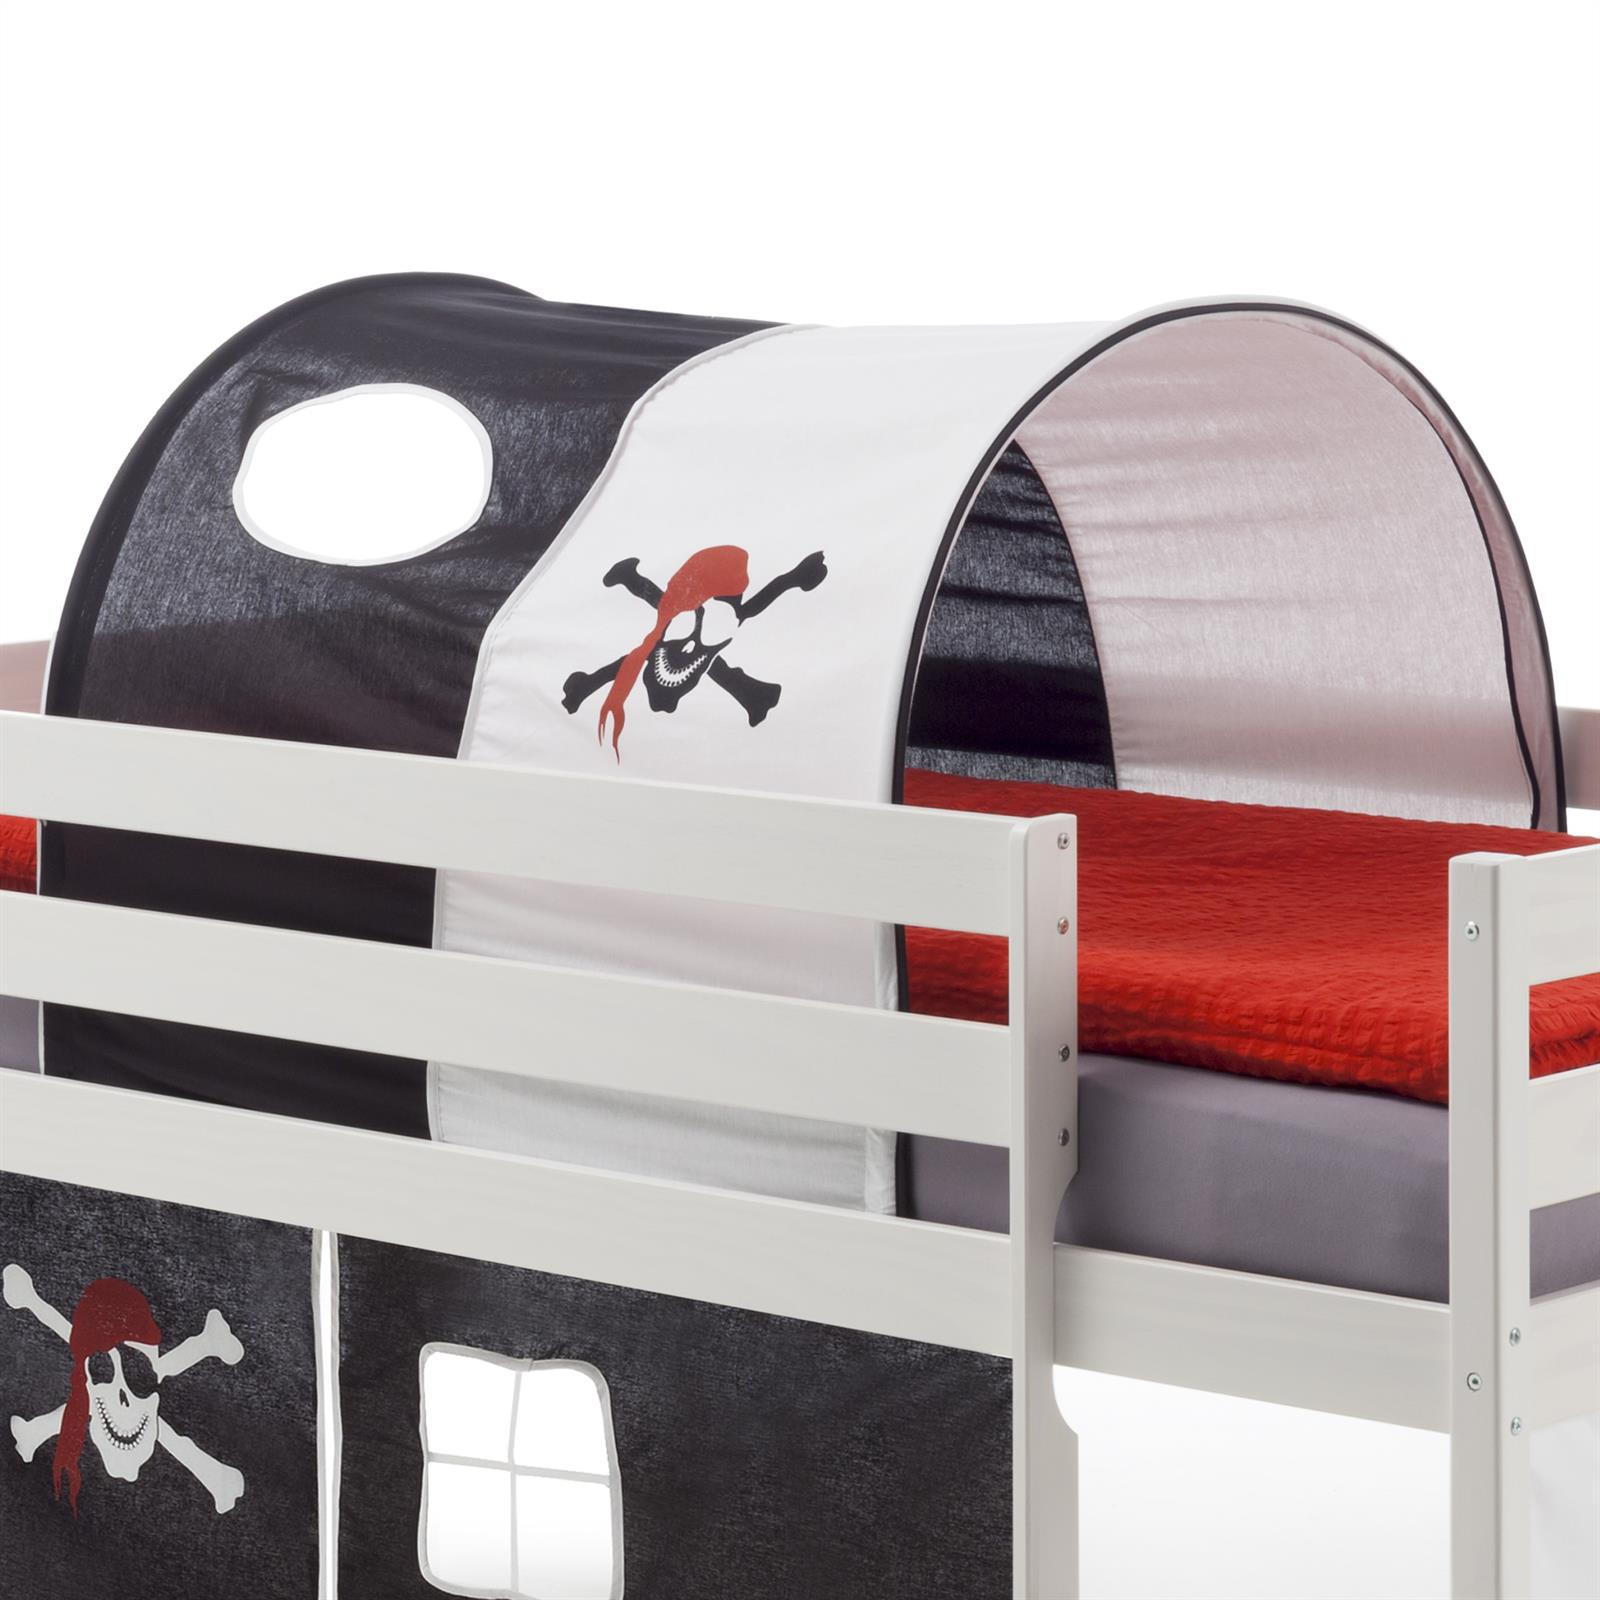 bett tunnel spielzelt bettzelt f r hochbett rutschbett spielbett kinderbett ebay. Black Bedroom Furniture Sets. Home Design Ideas